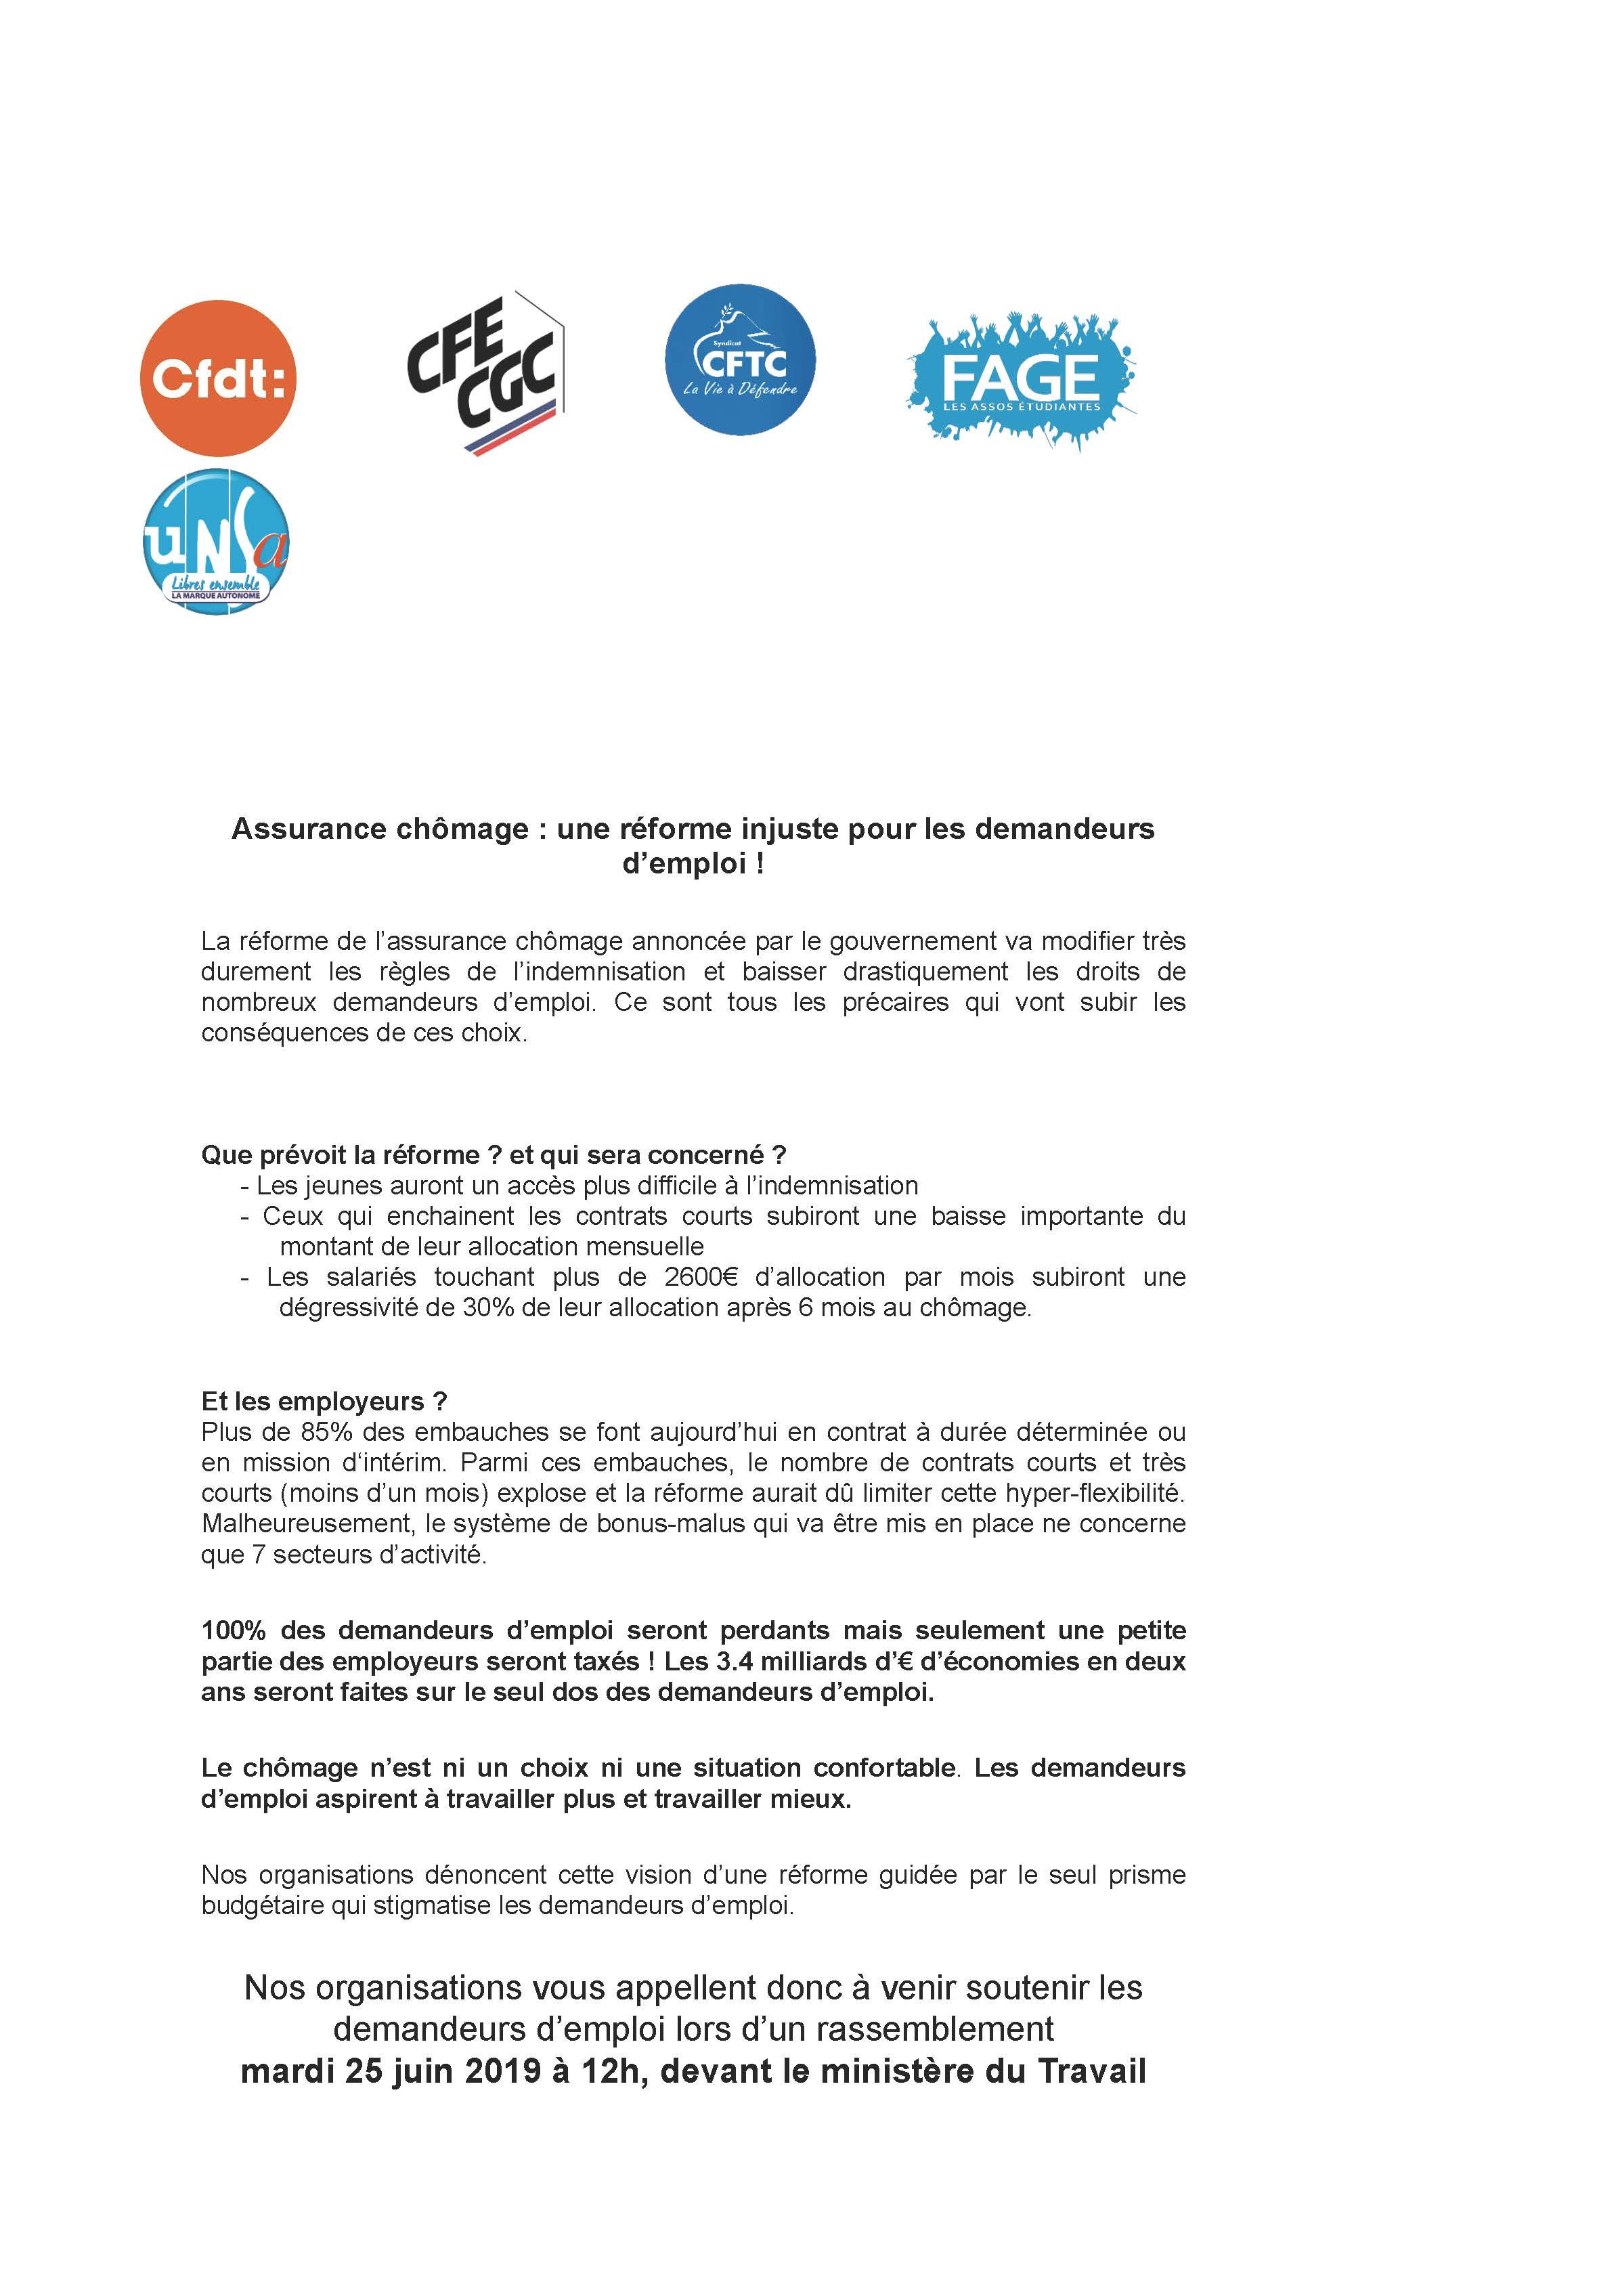 Lire la suite de l'article